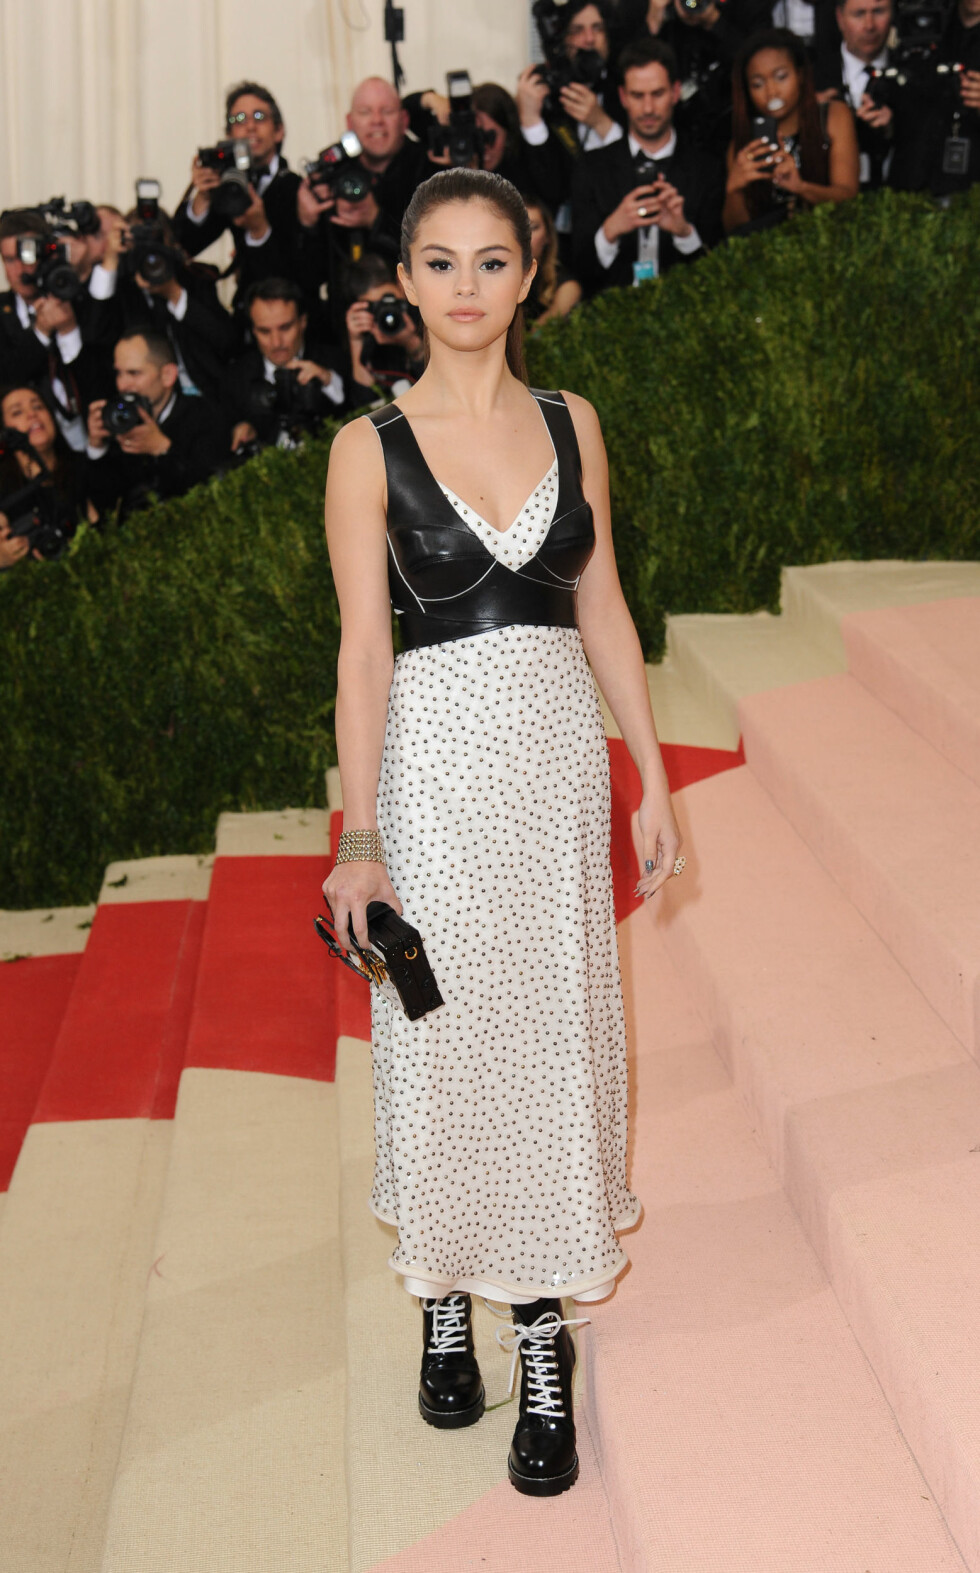 Stars arrive at the 'Manus x Machina: Fashion in an Age of Technology' Costume Institute Benefit Gala at the Metropolitan Museum of Art on May 2, 2016 in New York City, New York.  Pictured: Selena Gomez Ref: SPL1274387  020516   Picture by: Splash News  Splash News and Pictures Los Angeles:310-821-2666 New York:212-619-2666 London:870-934-2666 photodesk@splashnews.com  Foto: Splash News